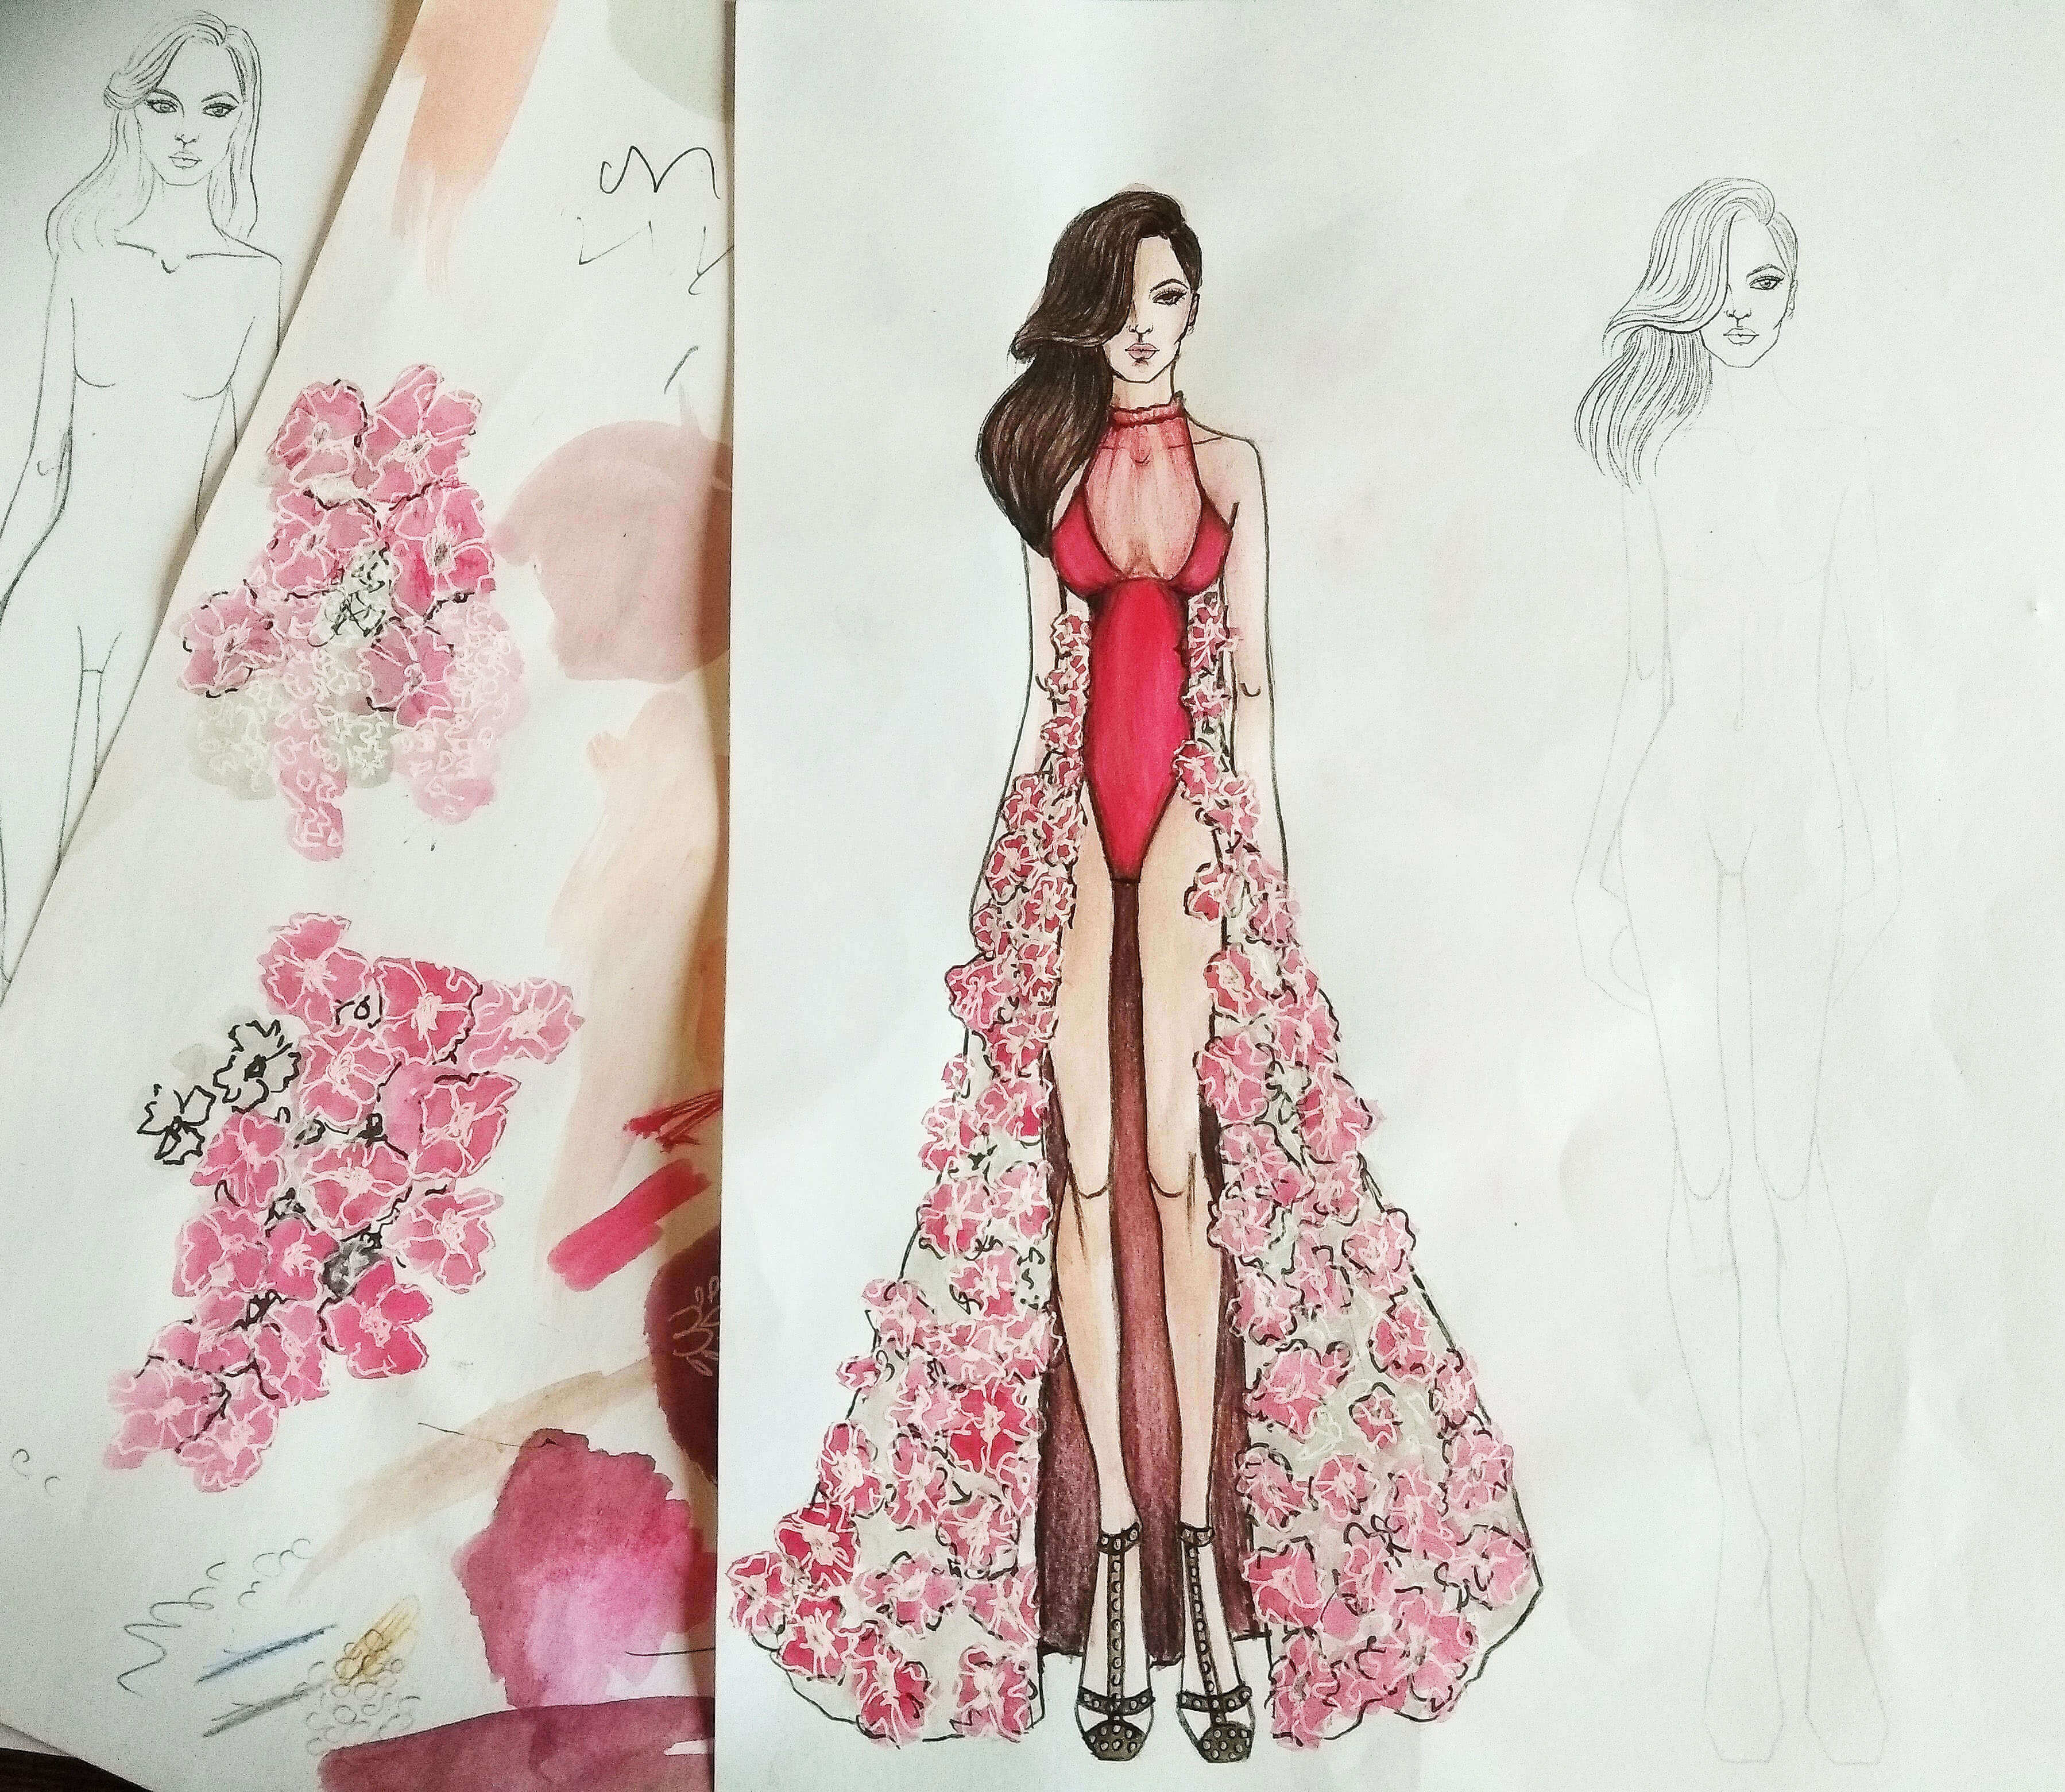 How To Draw A Fashion Sketches Like A Fashion Designer In